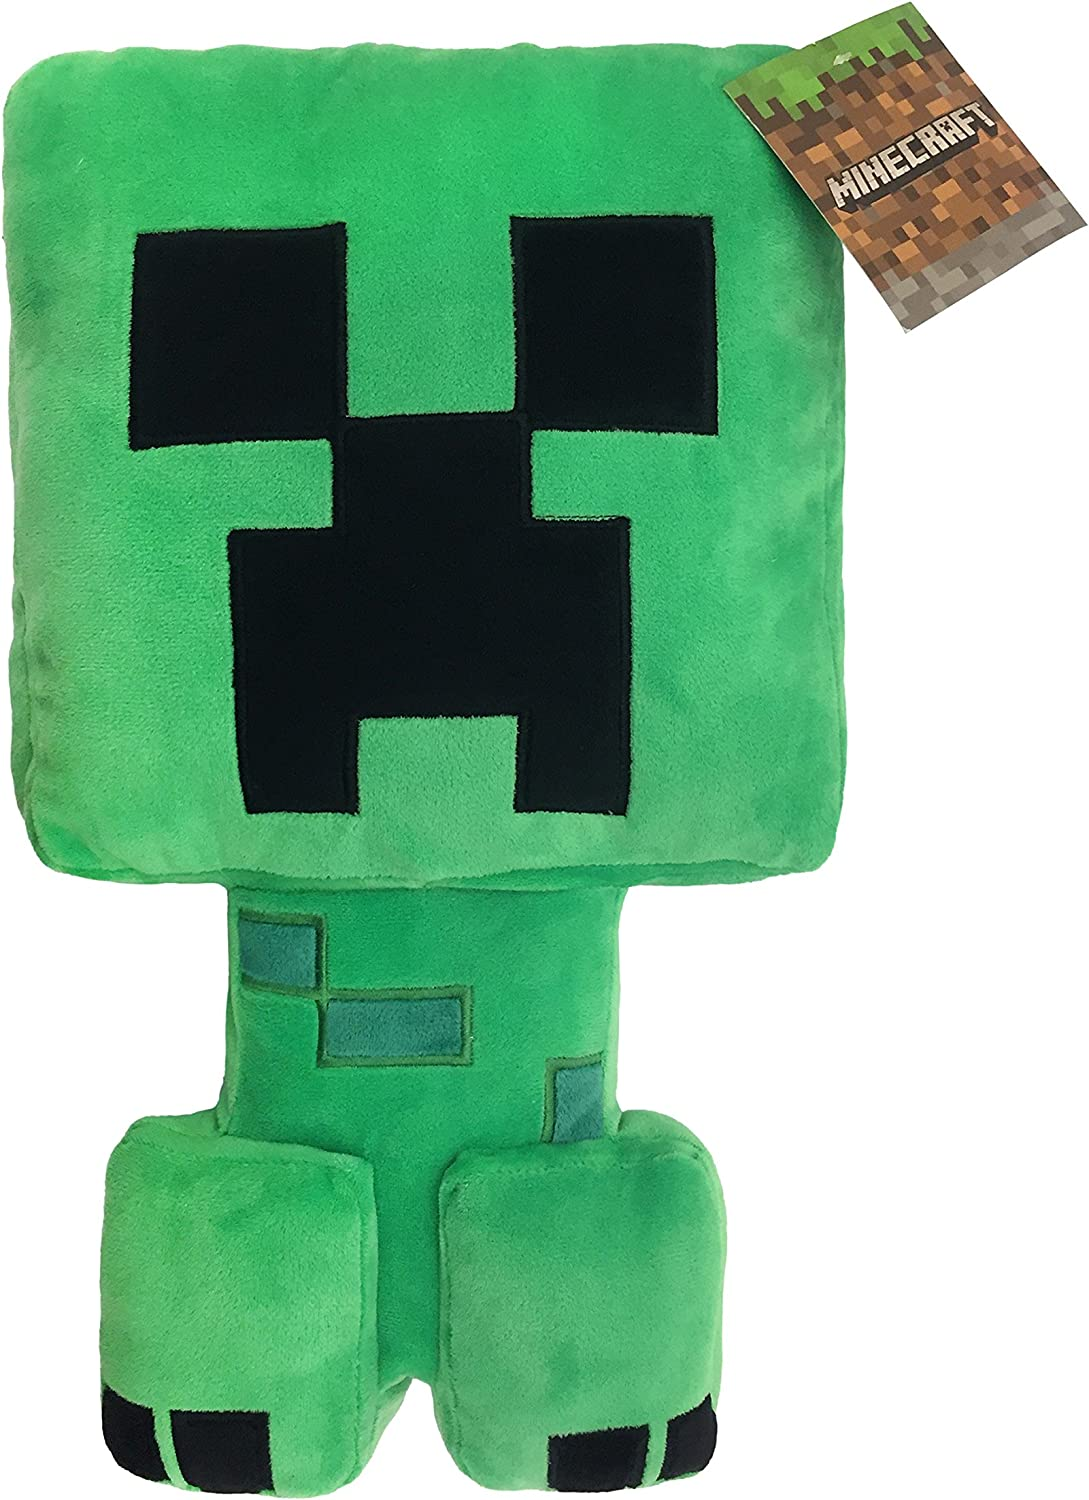 Jay Franco Minecraft Plush Stuffed Creeper Pillow Buddy - Super Soft  Polyester Microfiber, Measures 12 inches x 12 inches (Official Minecraft  Product)